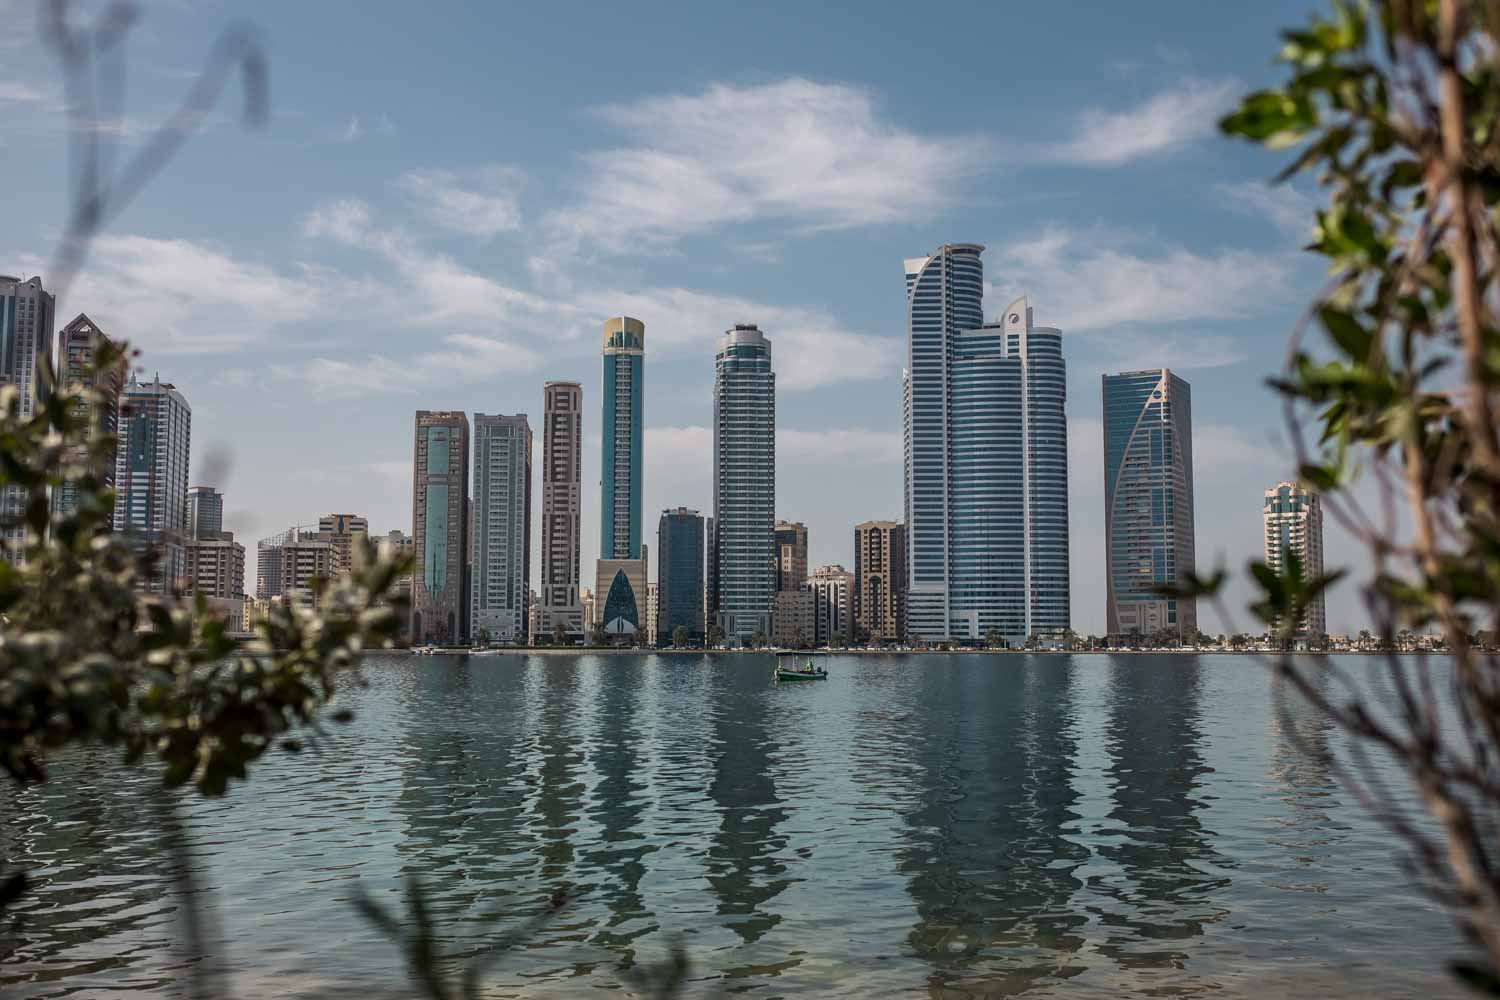 Best places to visit in Sharjah - City view from Al Noor island